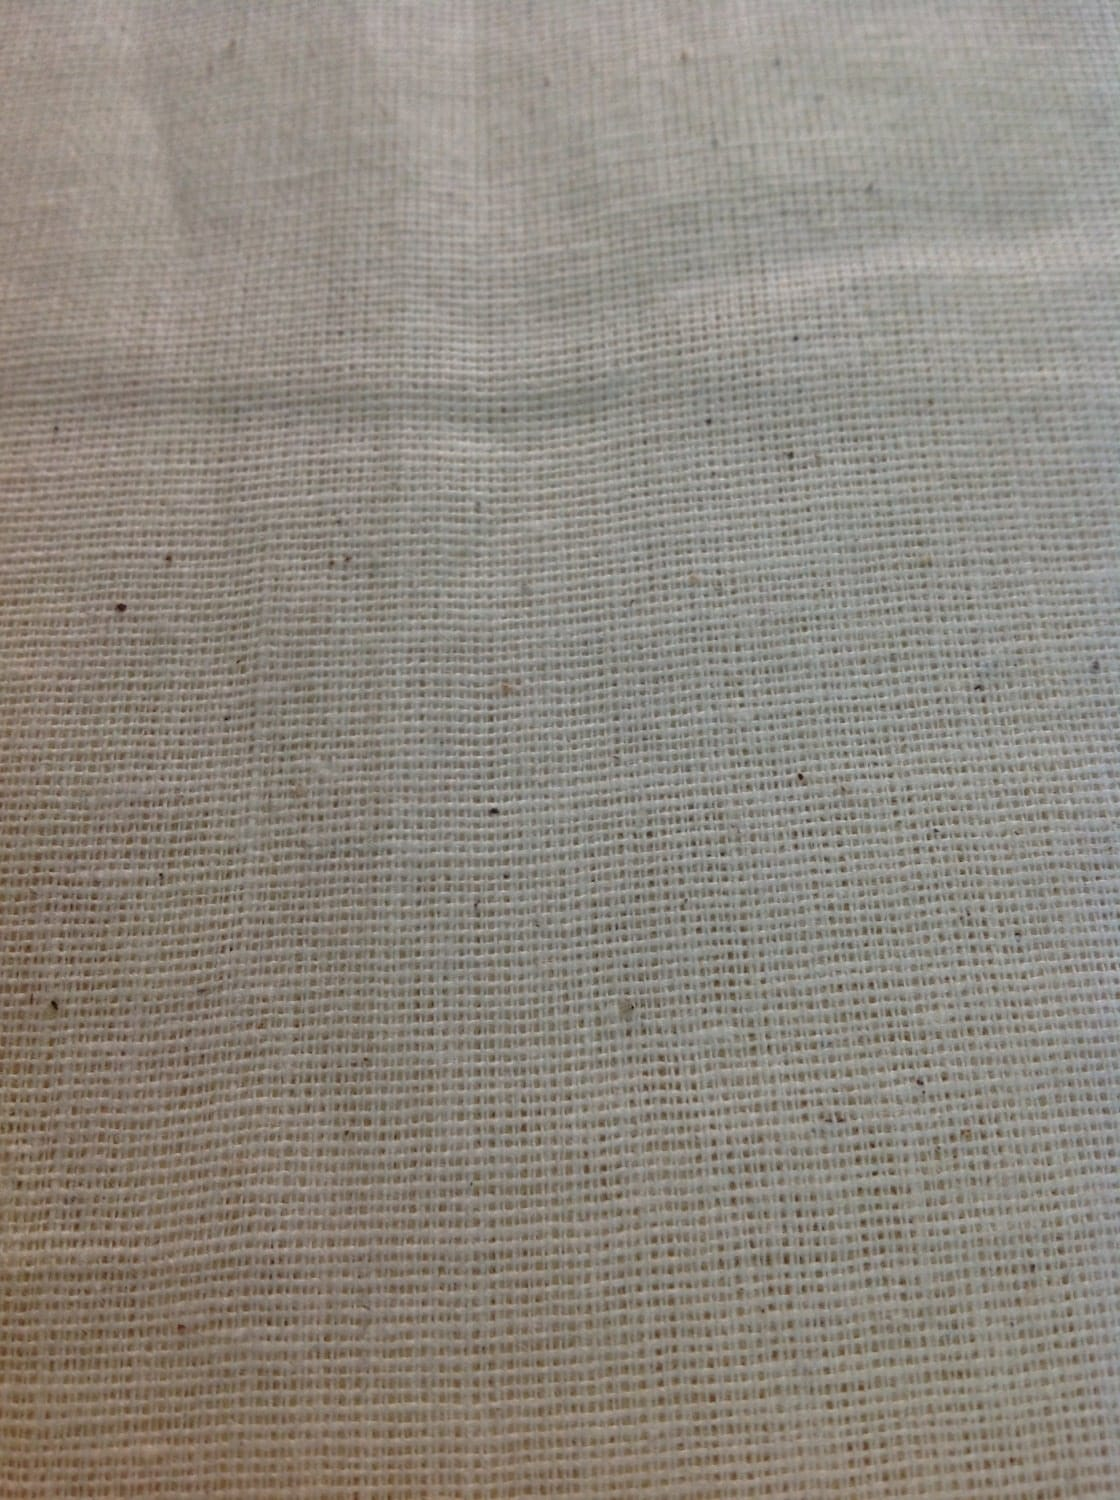 Unbleached Muslin Fabric Organic Cotton Fabric by DesiFabrics